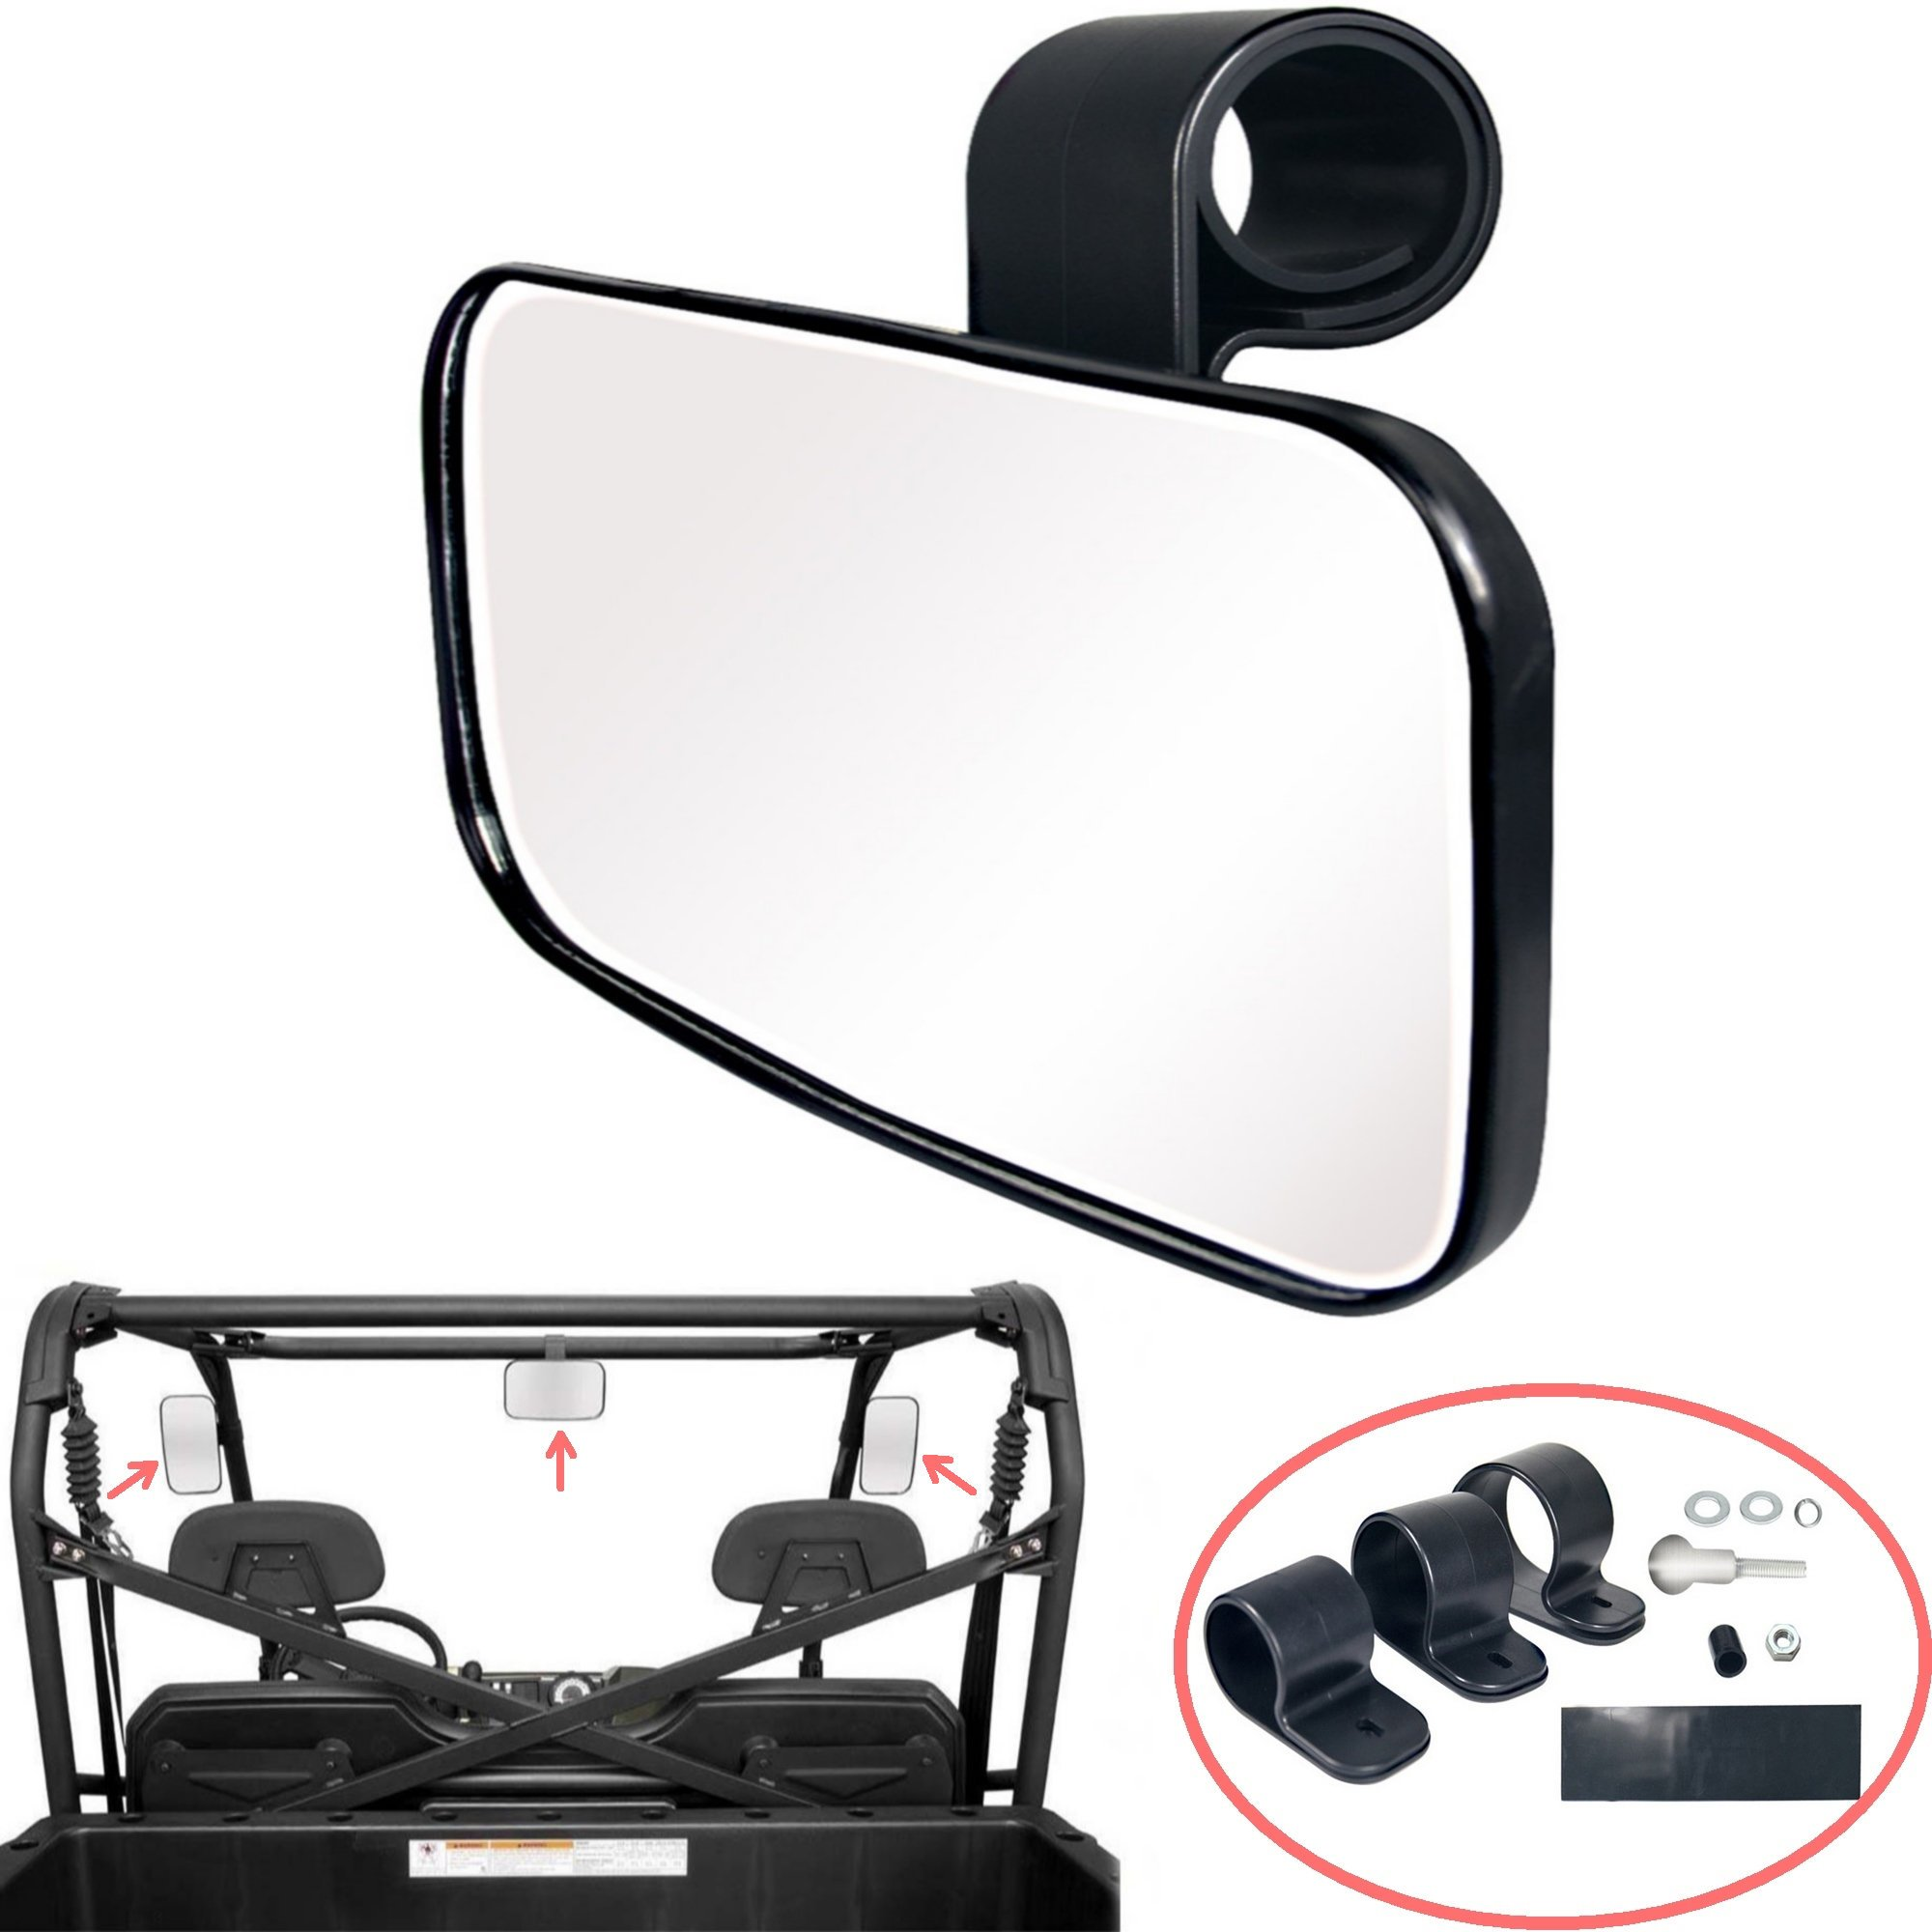 Clear Rear View Center Convex Mirror For ATV UTV Off Road Adjustable Wide View